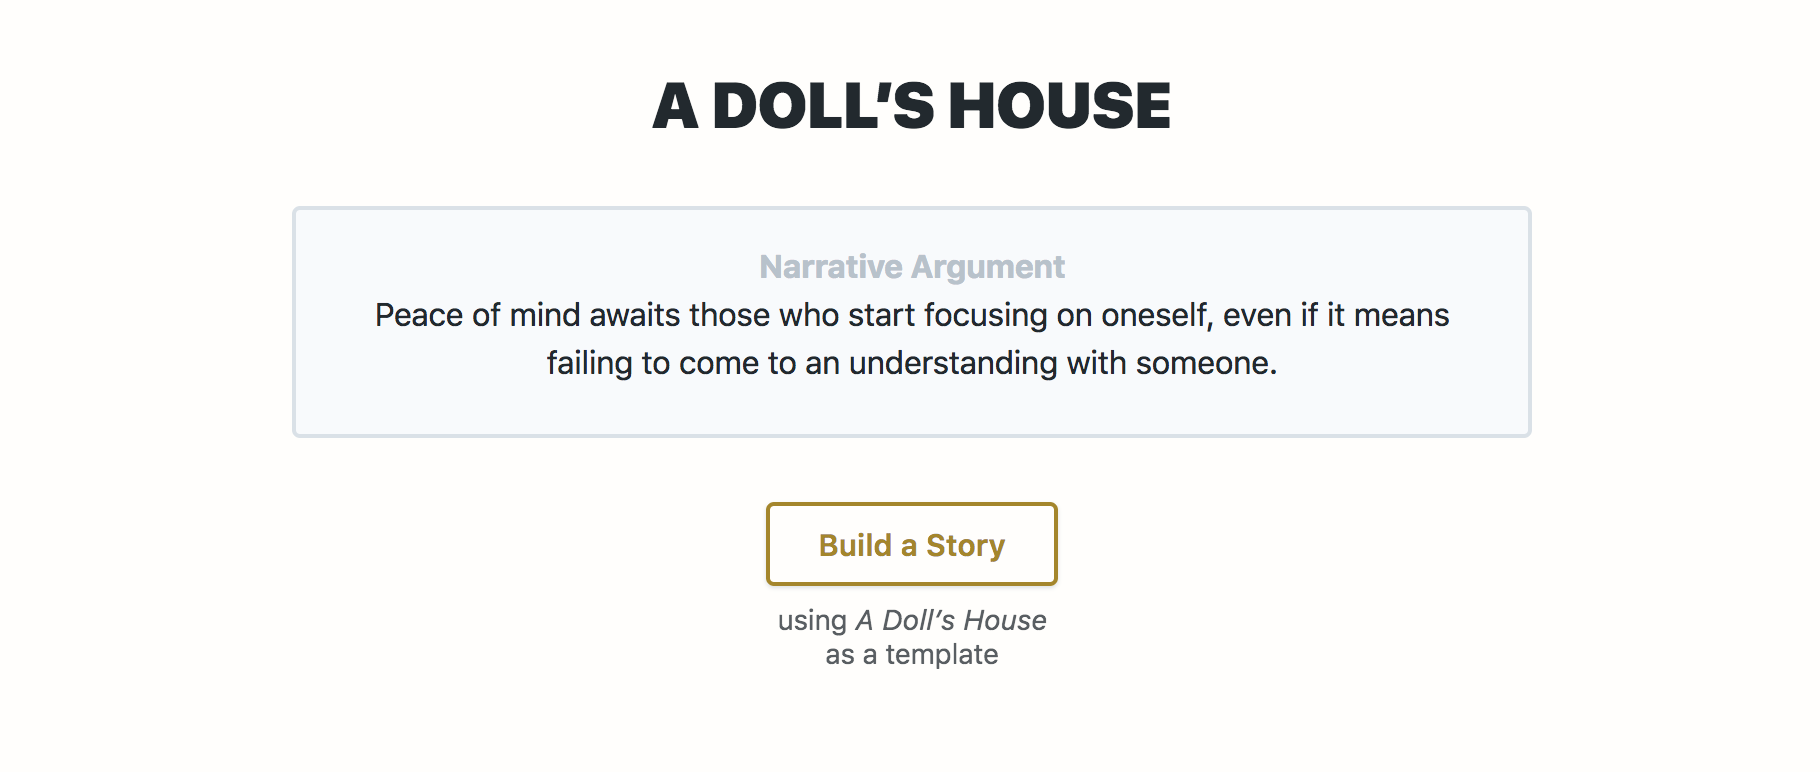 A Look at the Storyform for A Doll's House